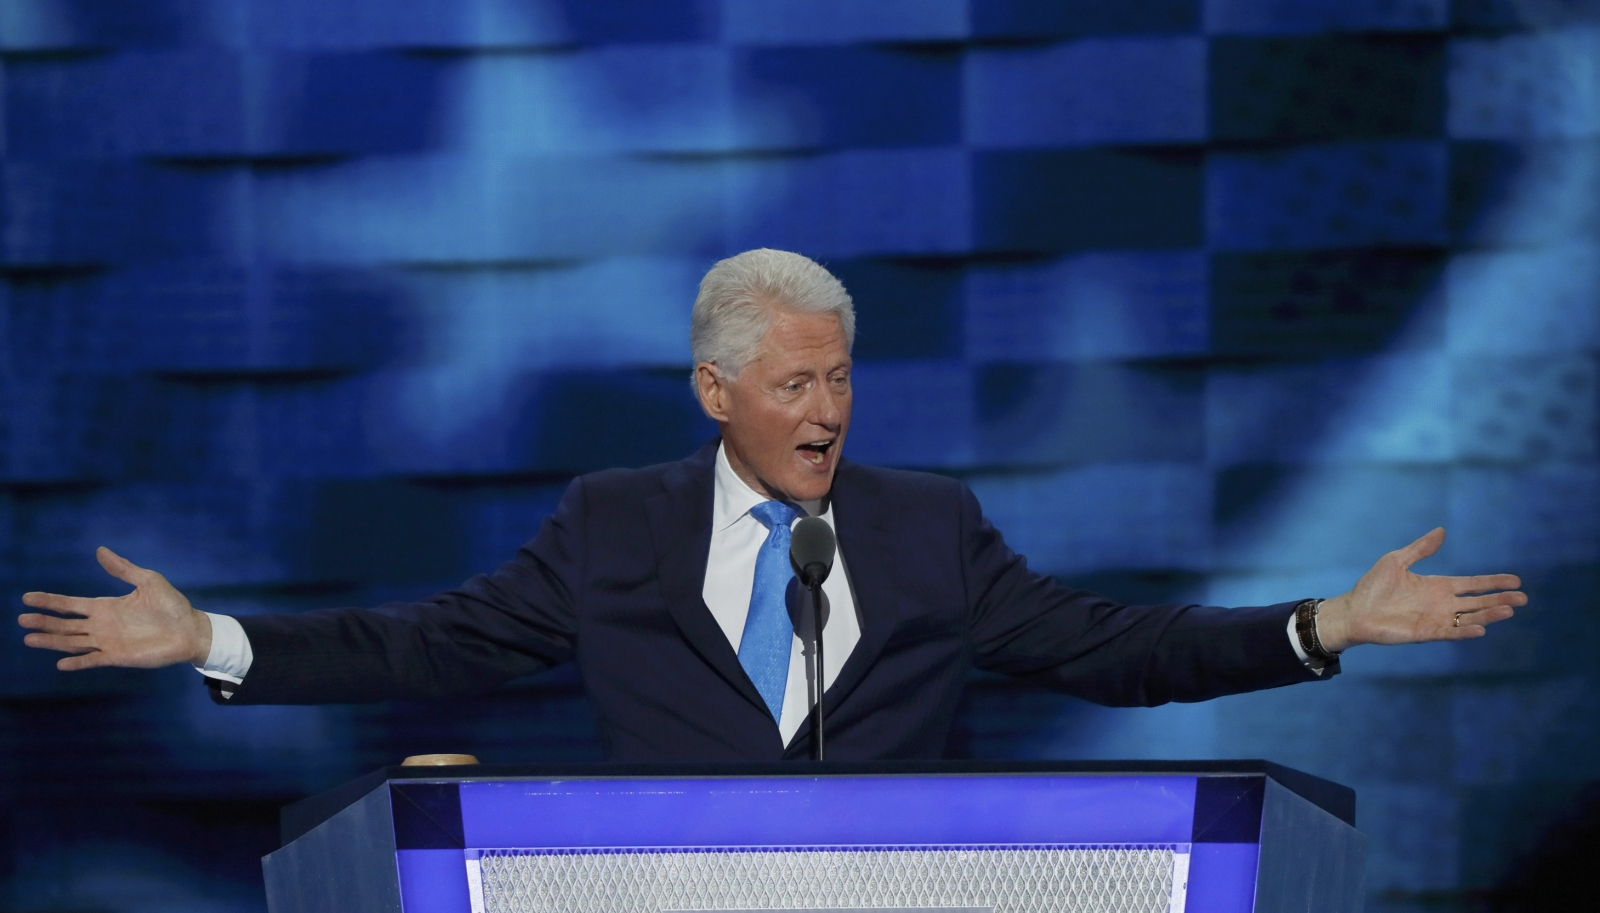 Bill Clinton DNC speech